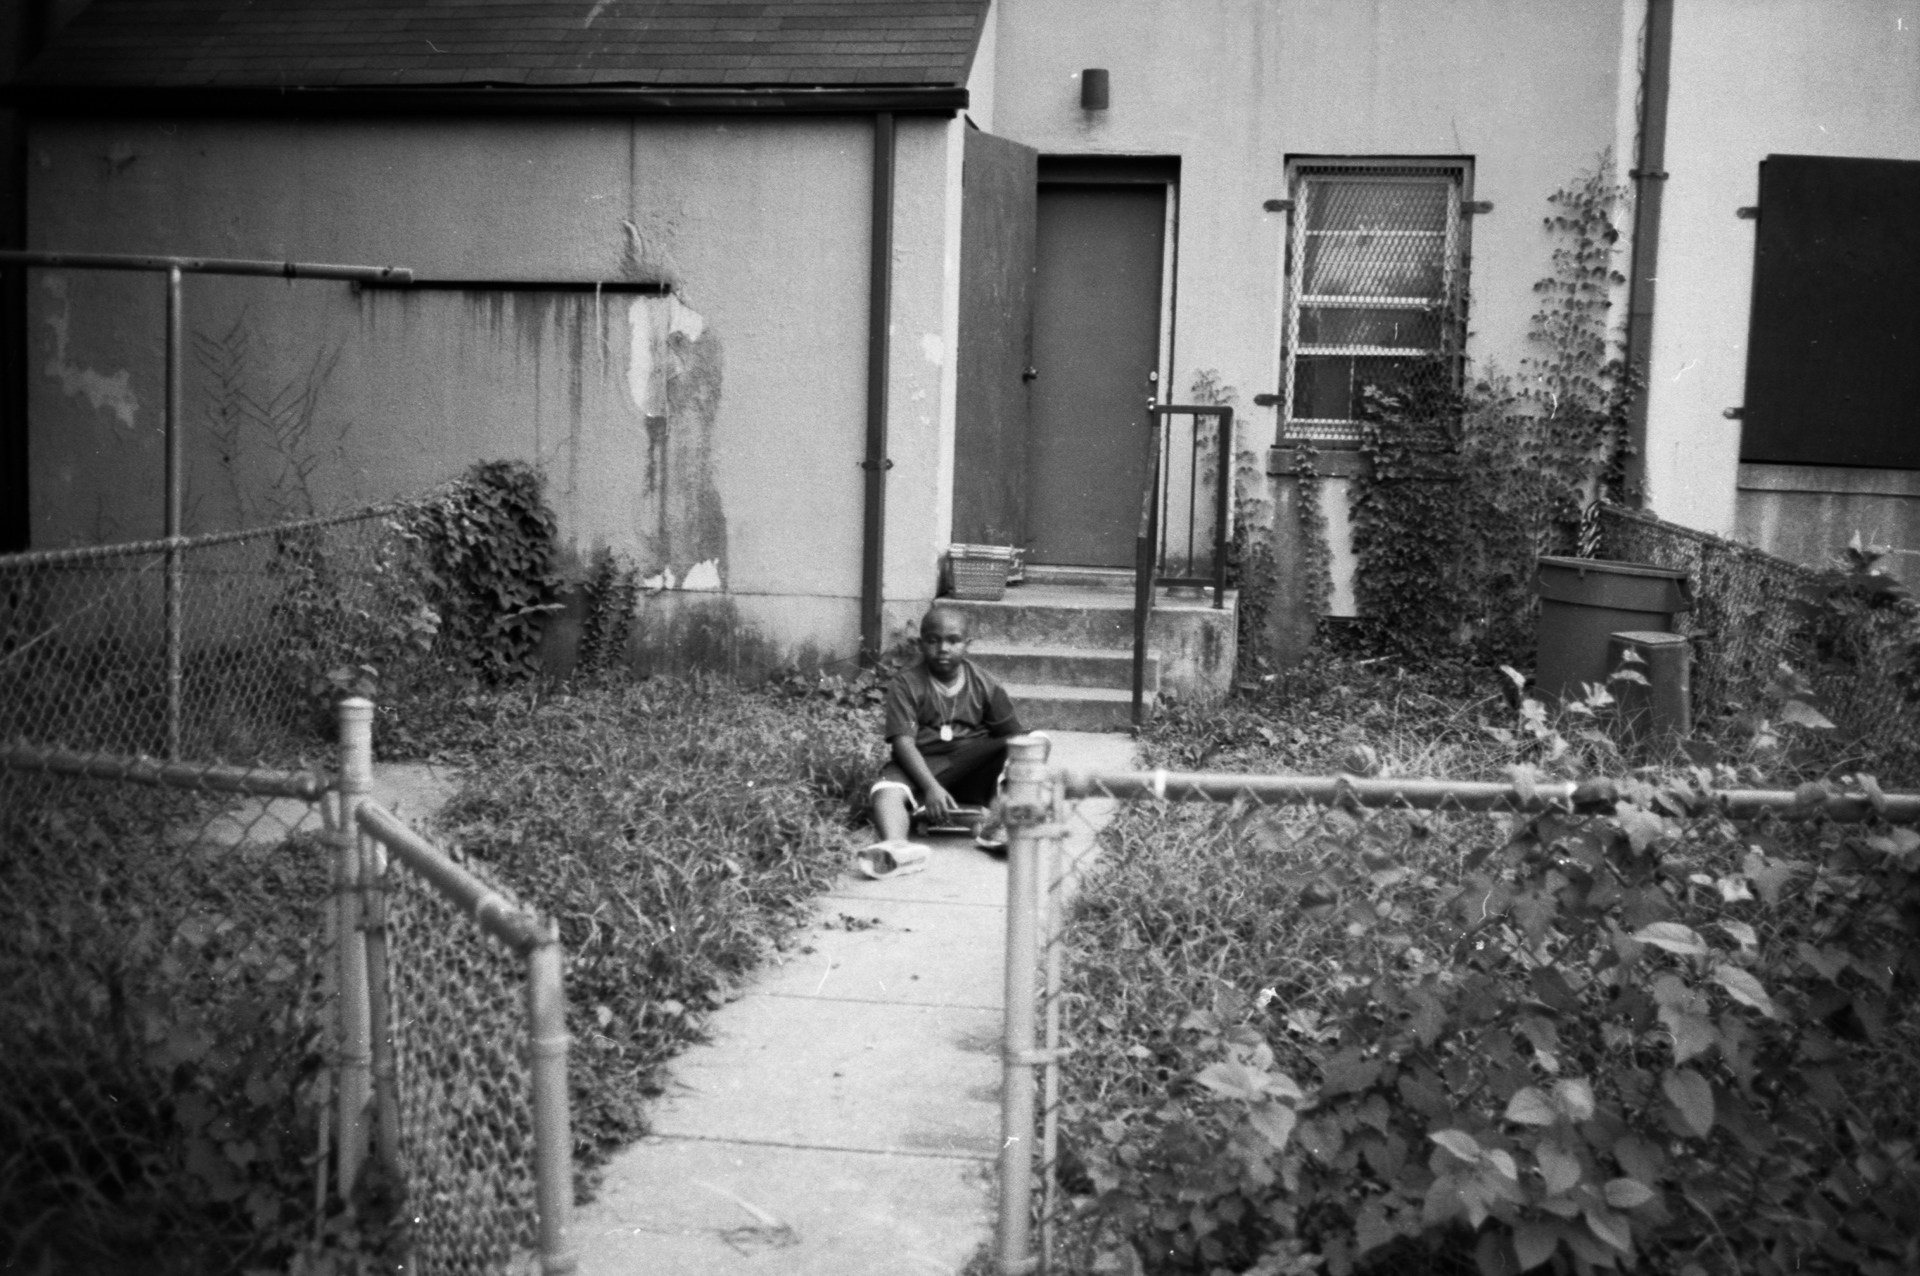 """Zion Archer sits on a skateboard in his backyard in Barry Farm August 2017. """"Barry Farm is not really a good place because they really shoot up a lot, they do bad things, and people rob people's stuff, like they took my scooter. That's why I don't like Barry Farms. The only thing I like is when I play with my friends,"""" says Archer."""